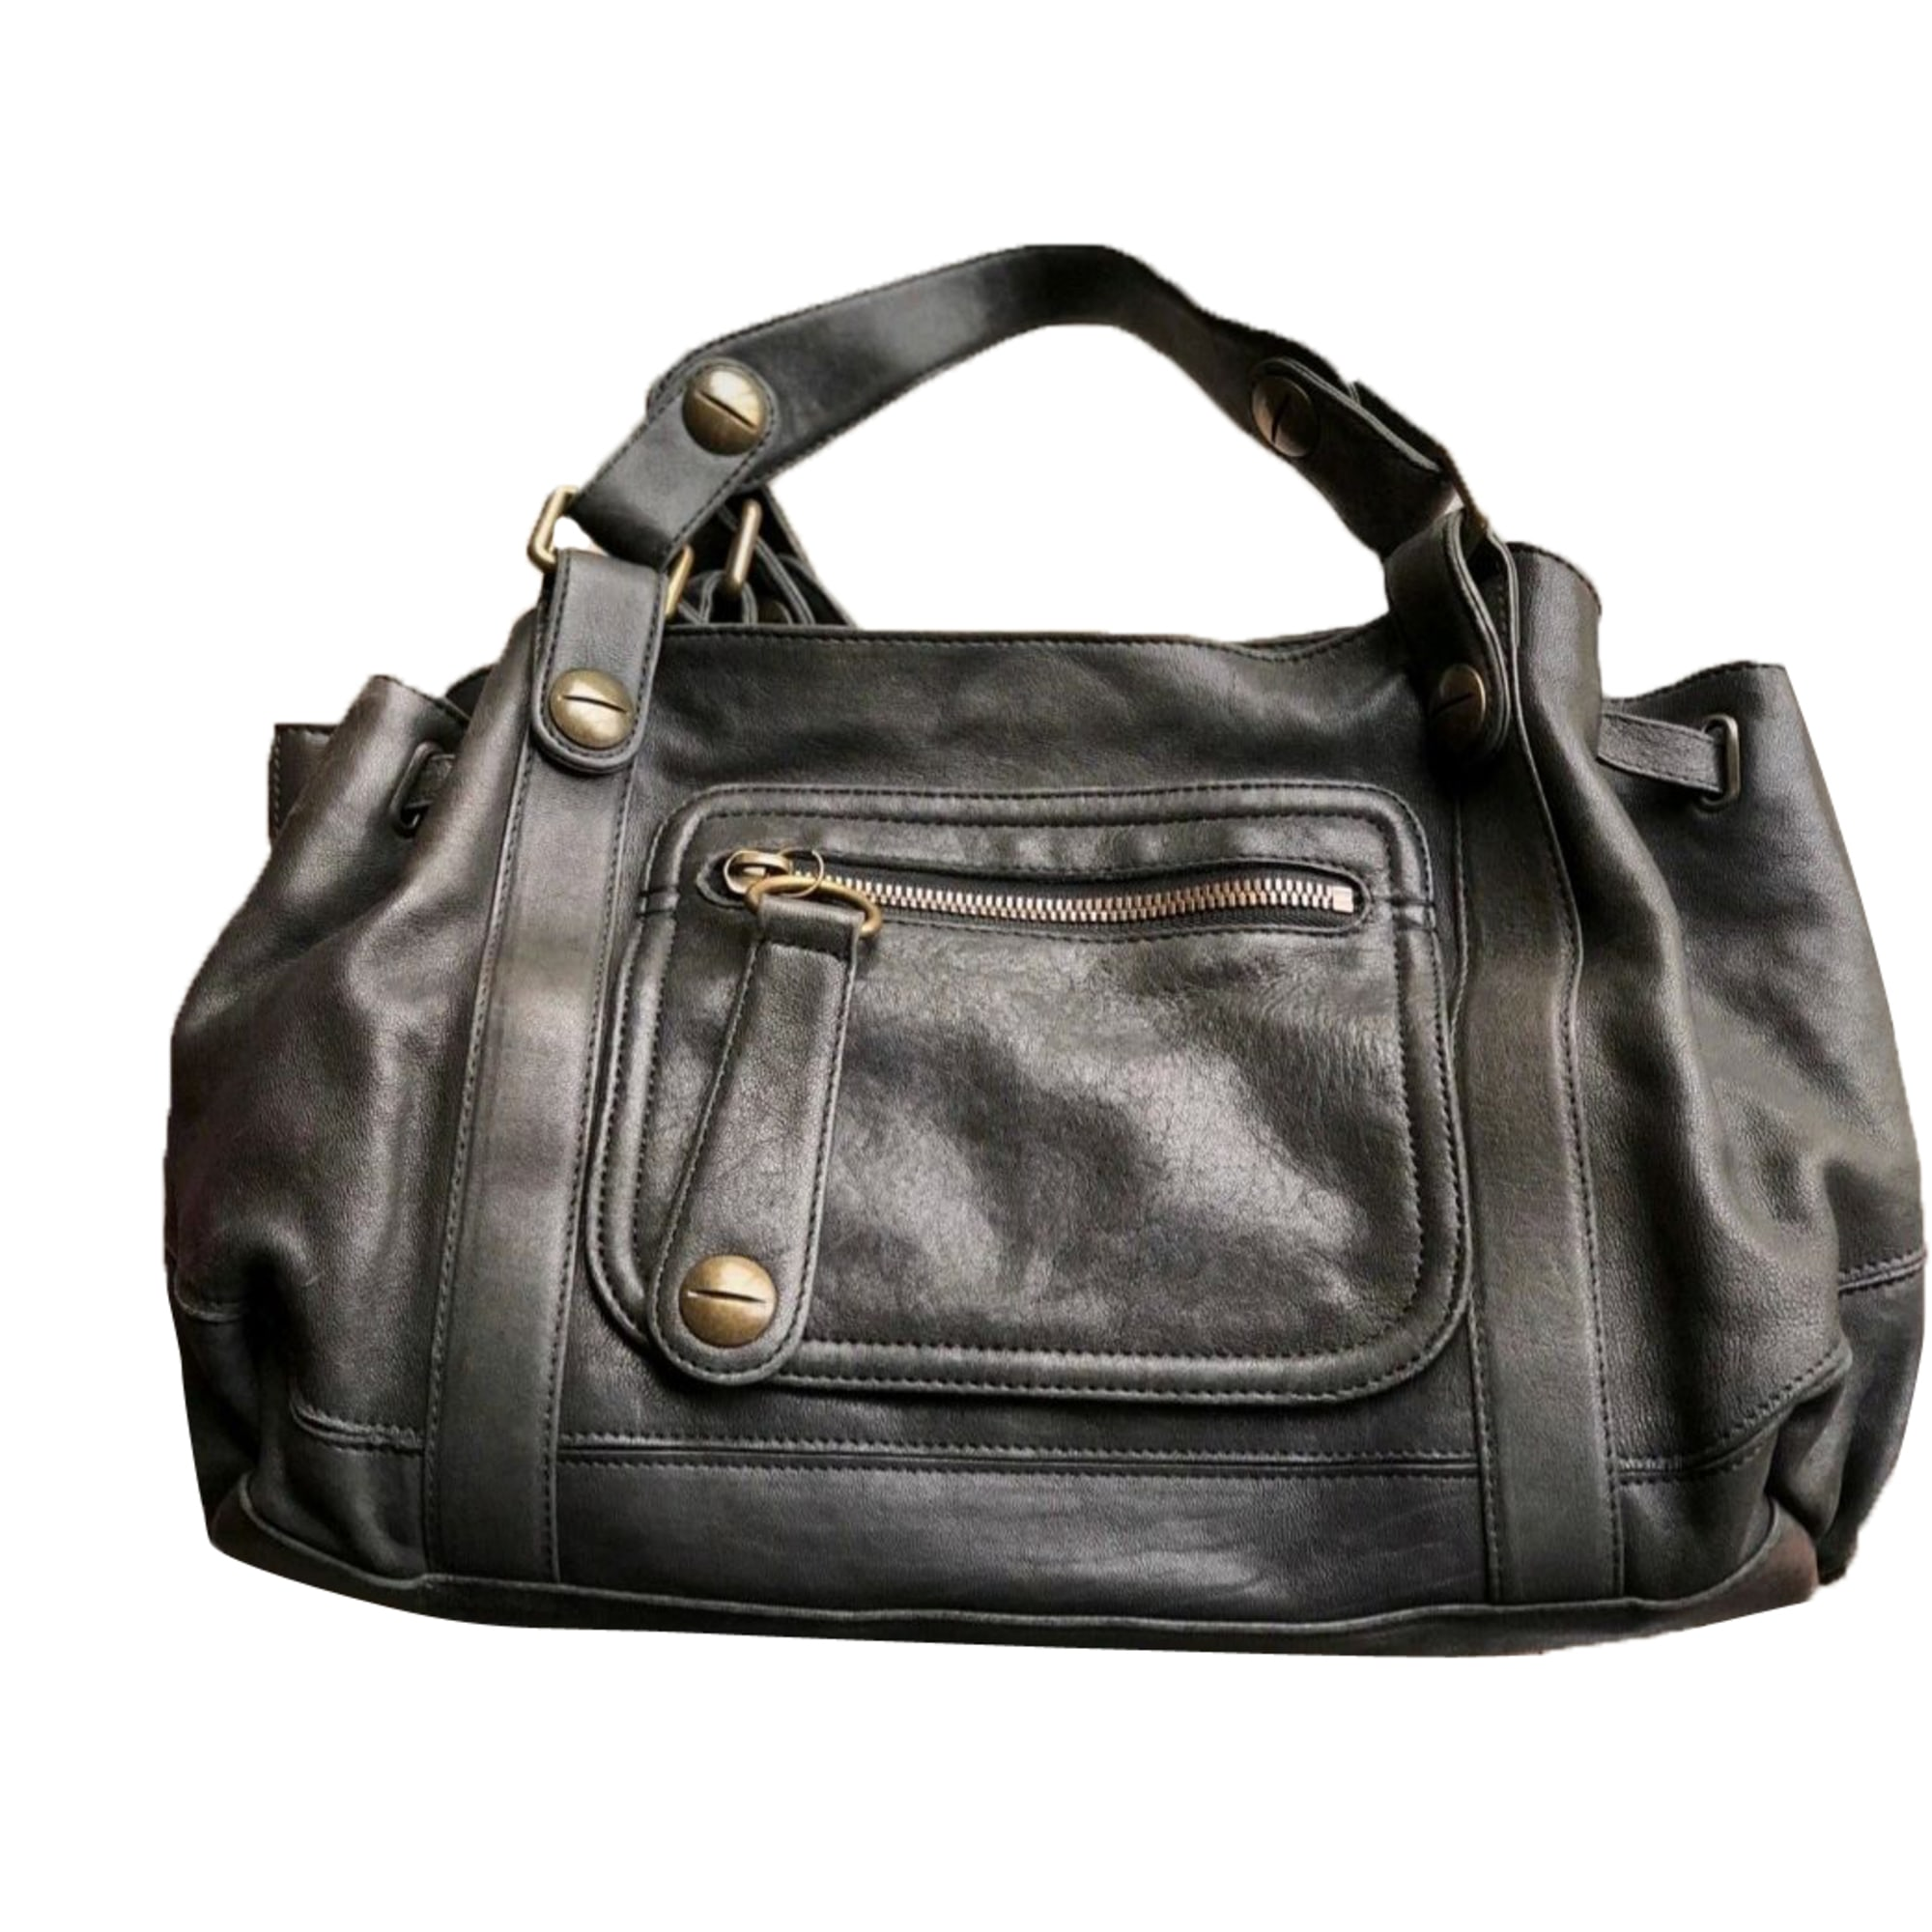 Leather Handbag GERARD DAREL Black